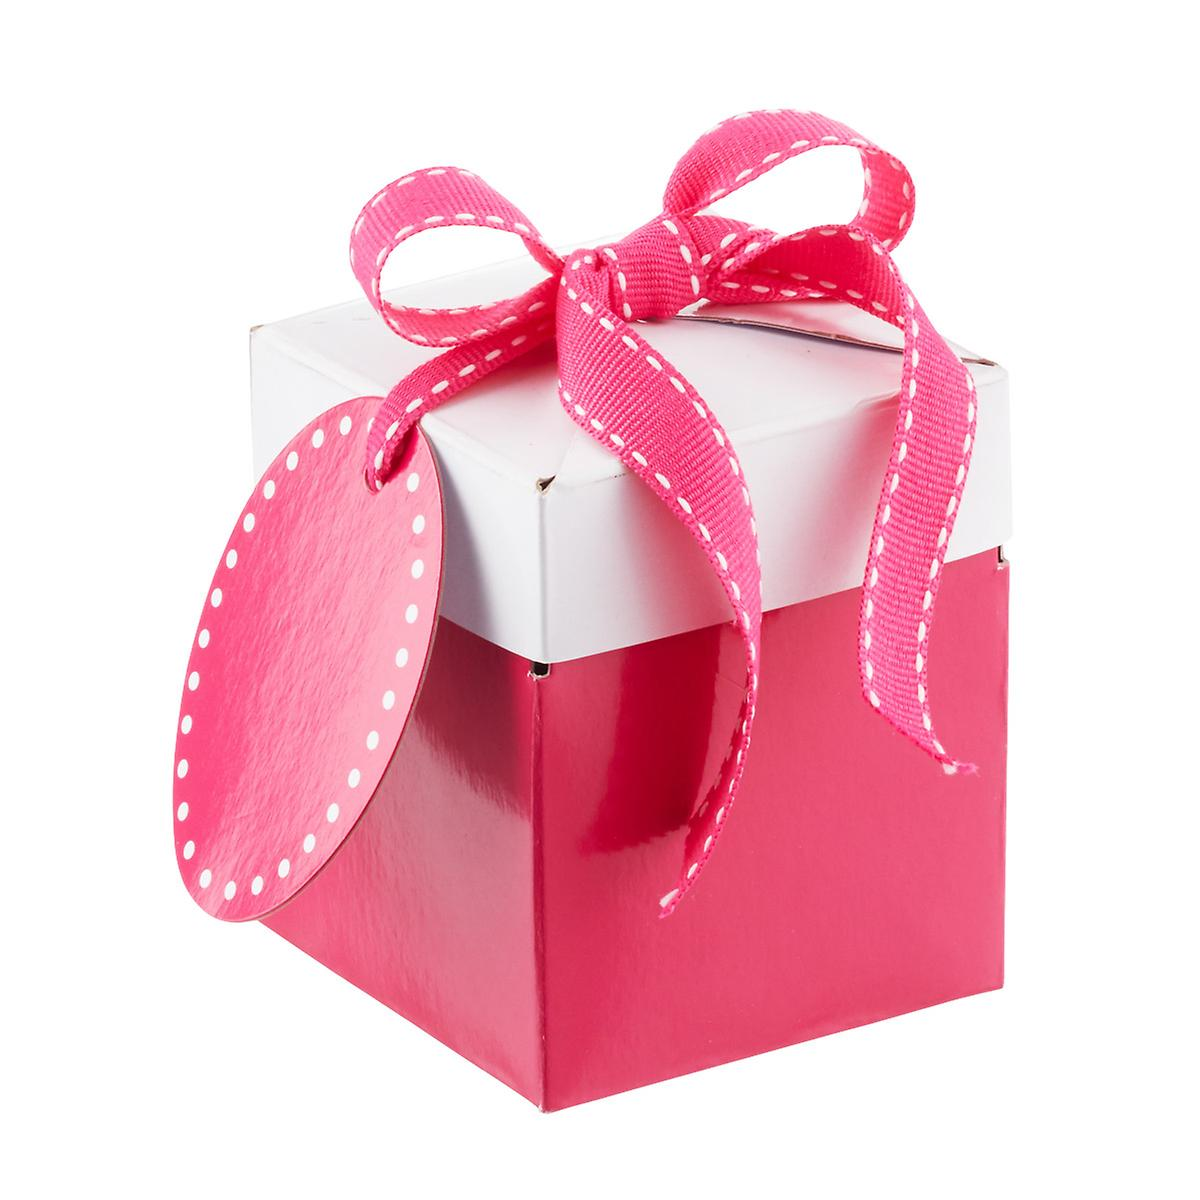 Pink Pop-Up Gift Boxes | The Container Store